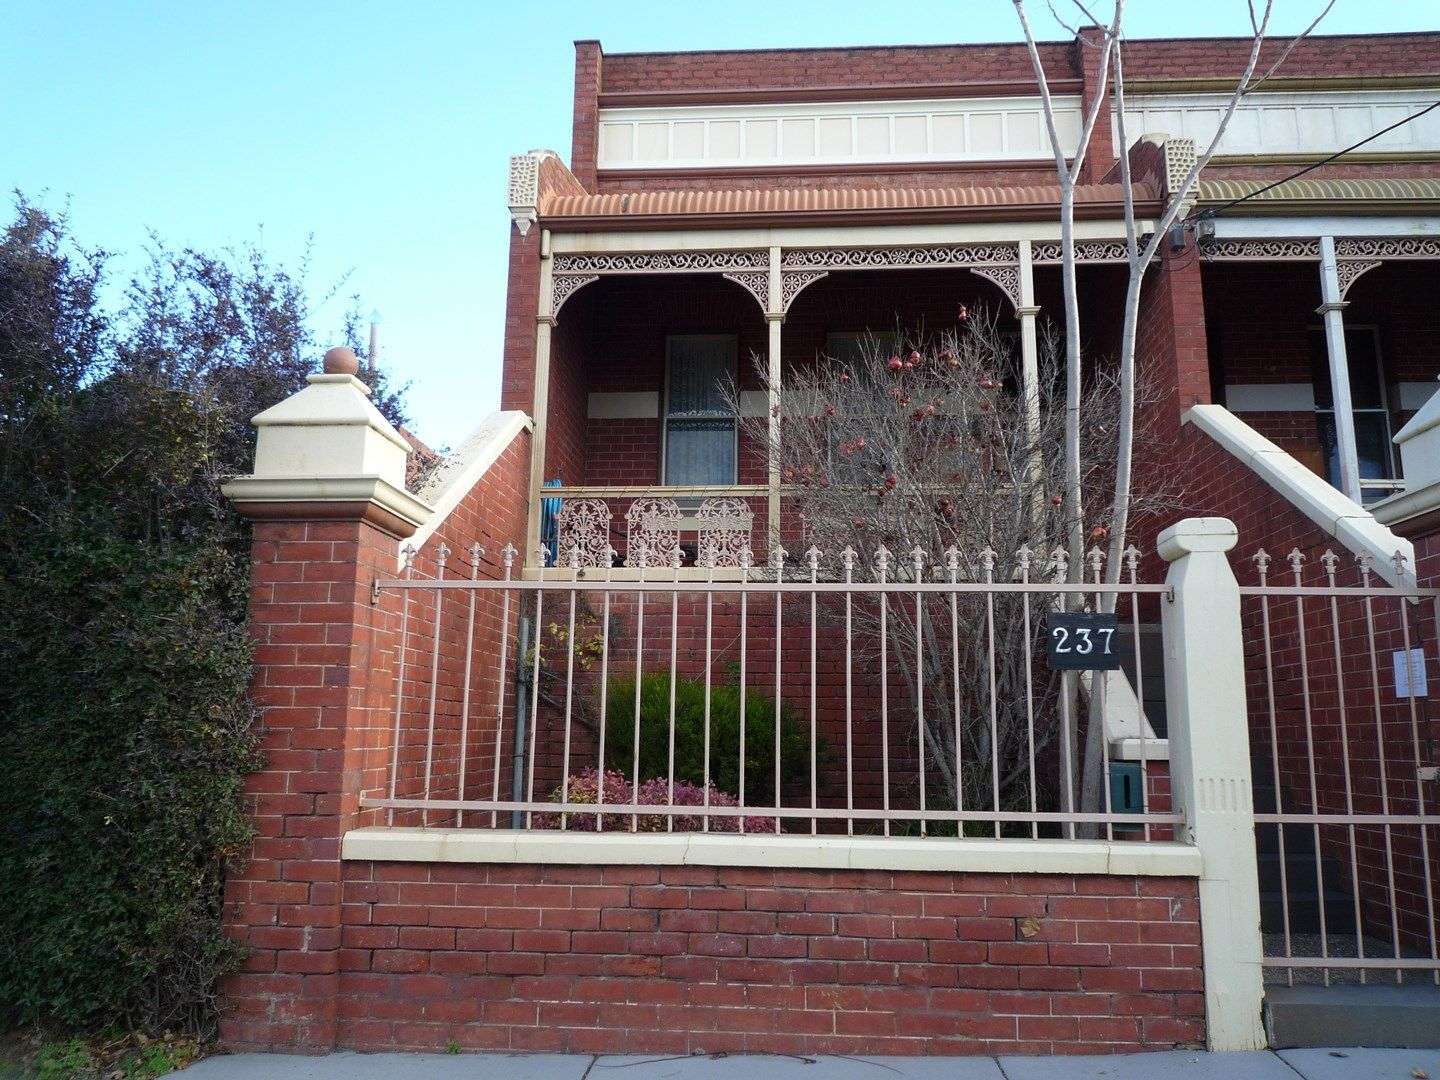 237 View Street, Bendigo VIC 3550, Image 0